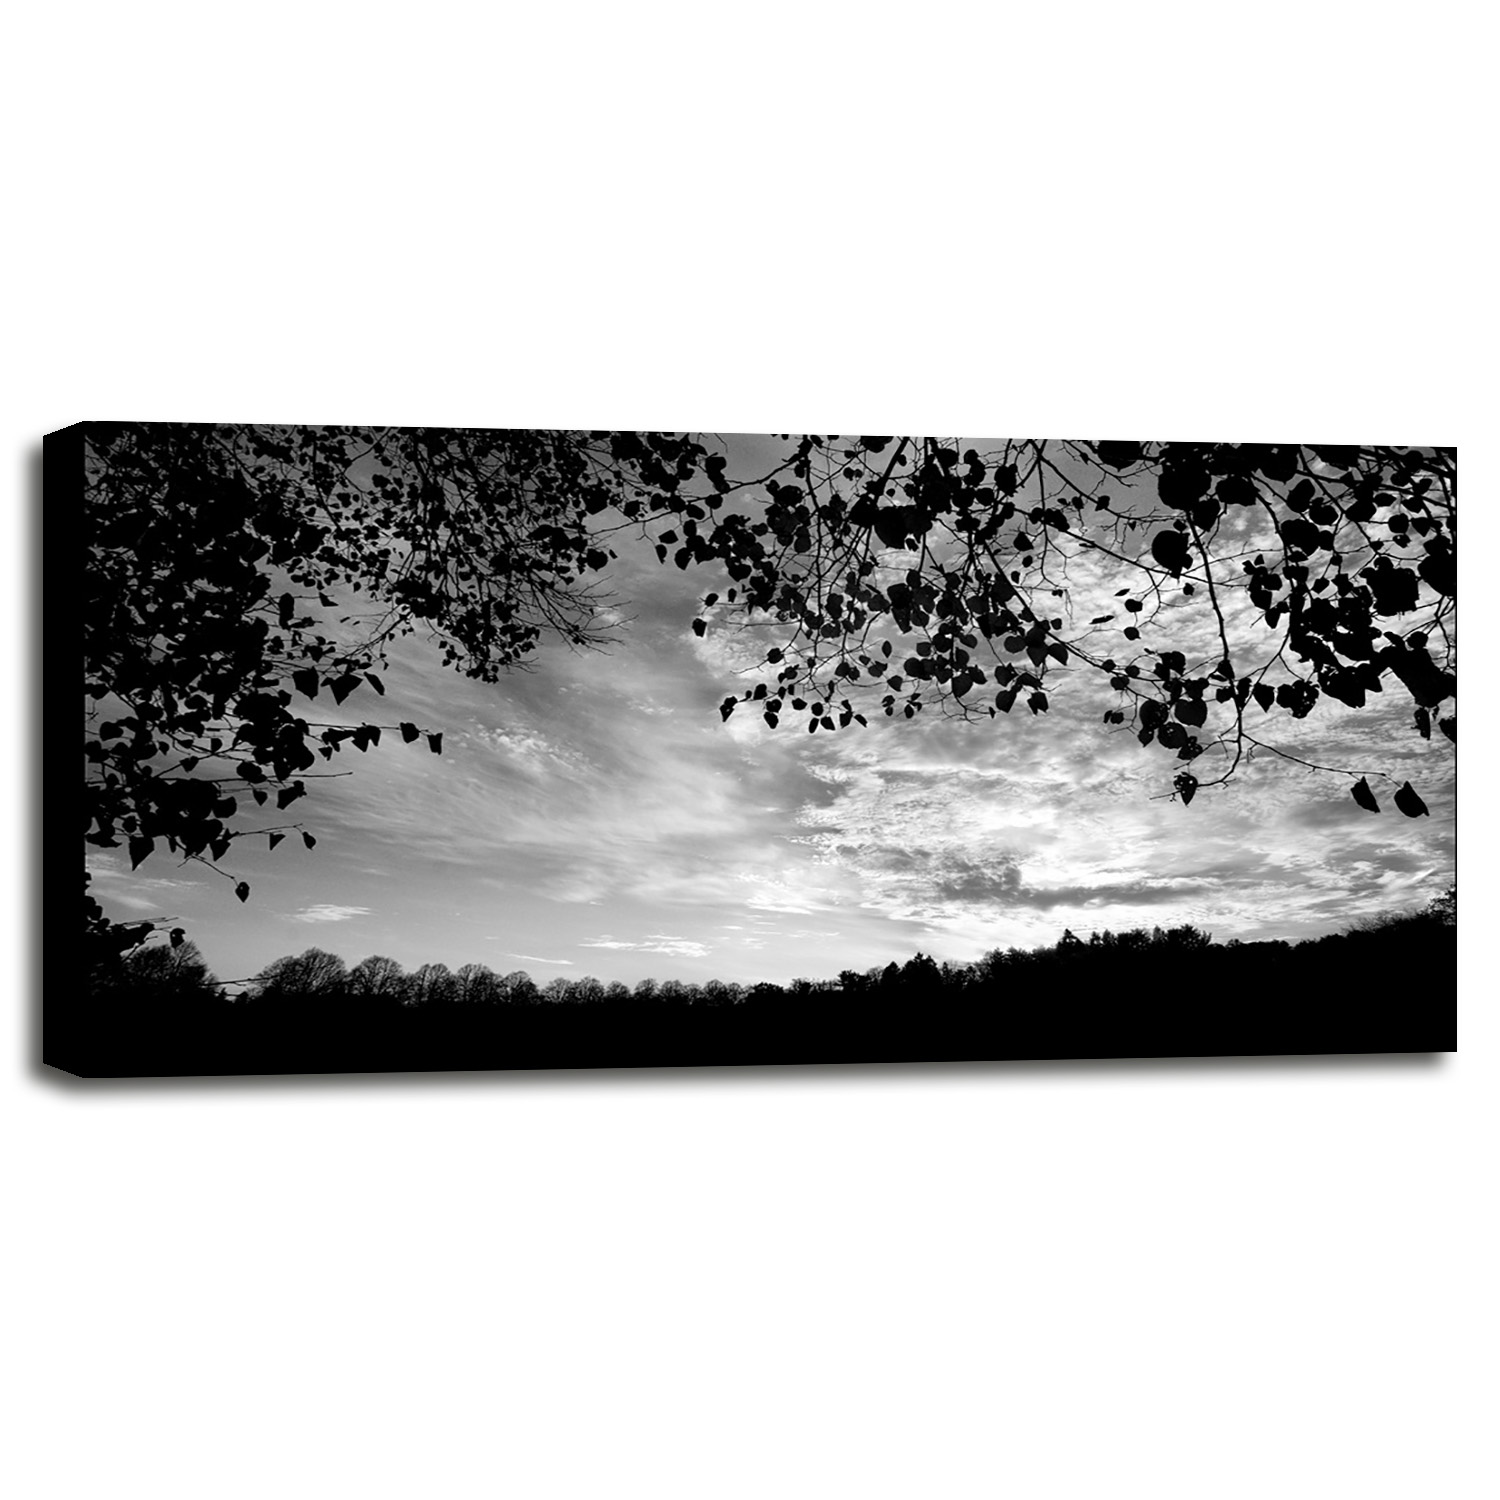 Bright sundown bx20 by harold silverman landscapes in a canvas stretched in maple frame